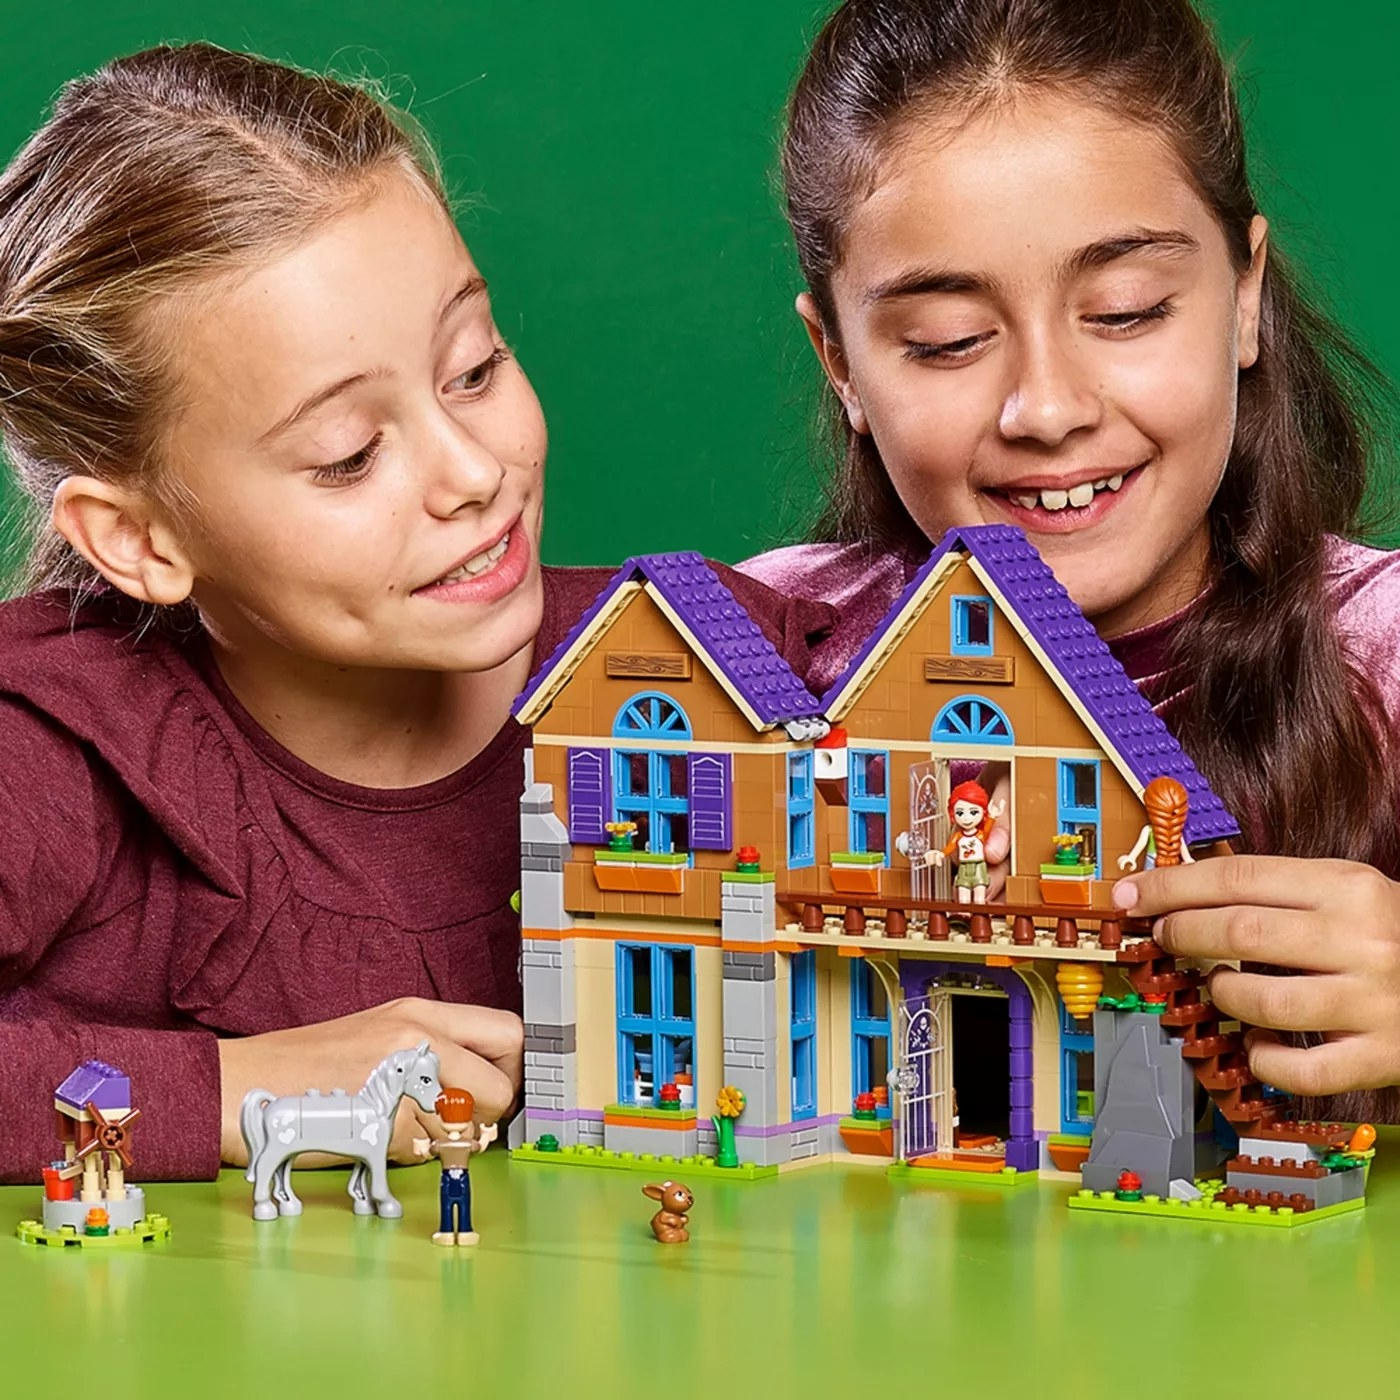 Two kids playing with dolls in the Lego doll house